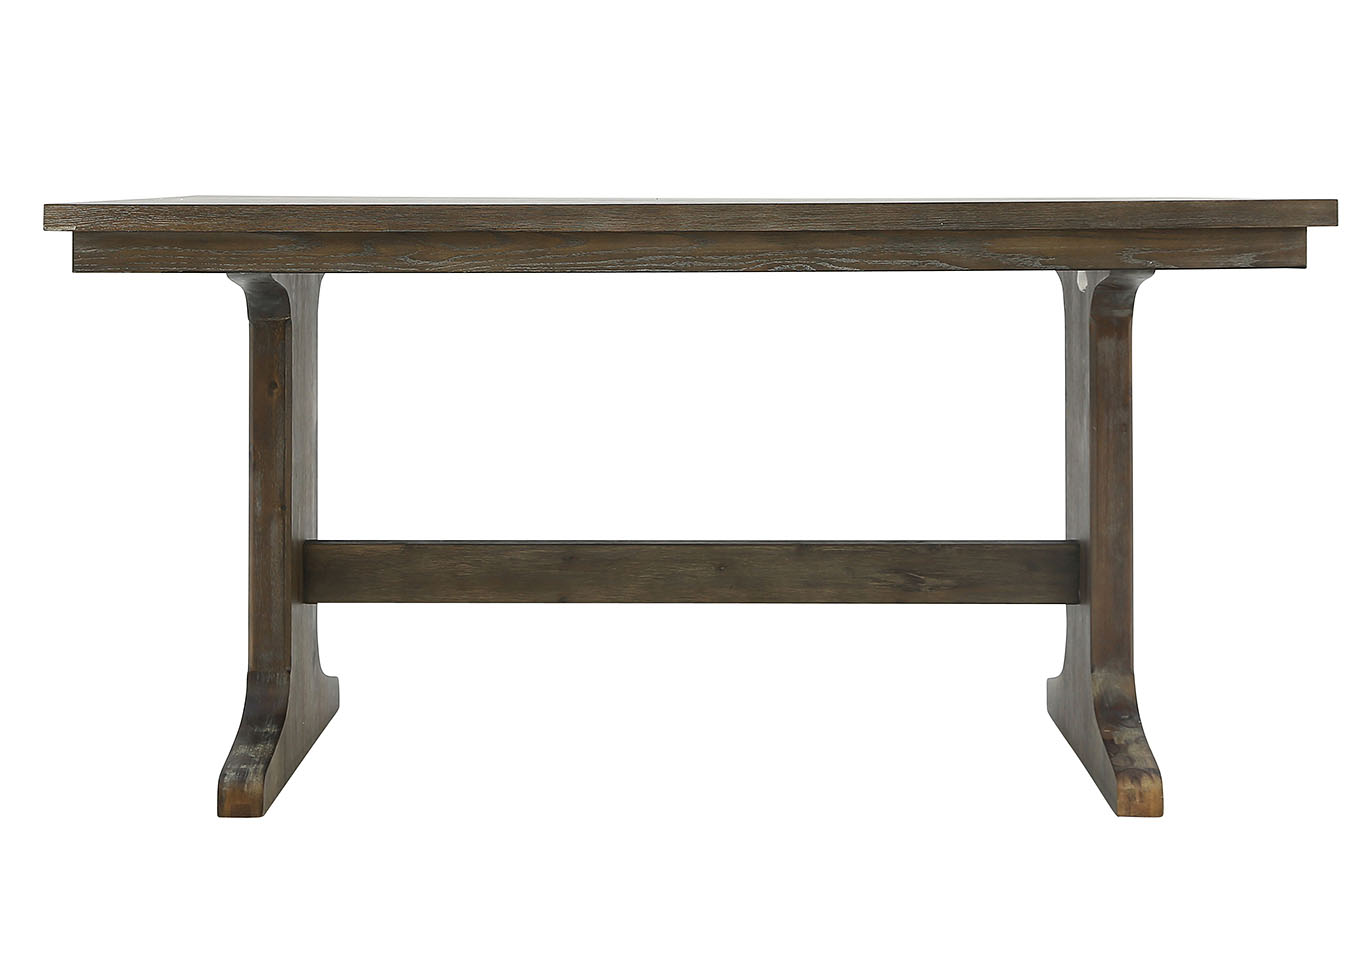 CHARLESTON II COUNTER HEIGHT DINING TABLE